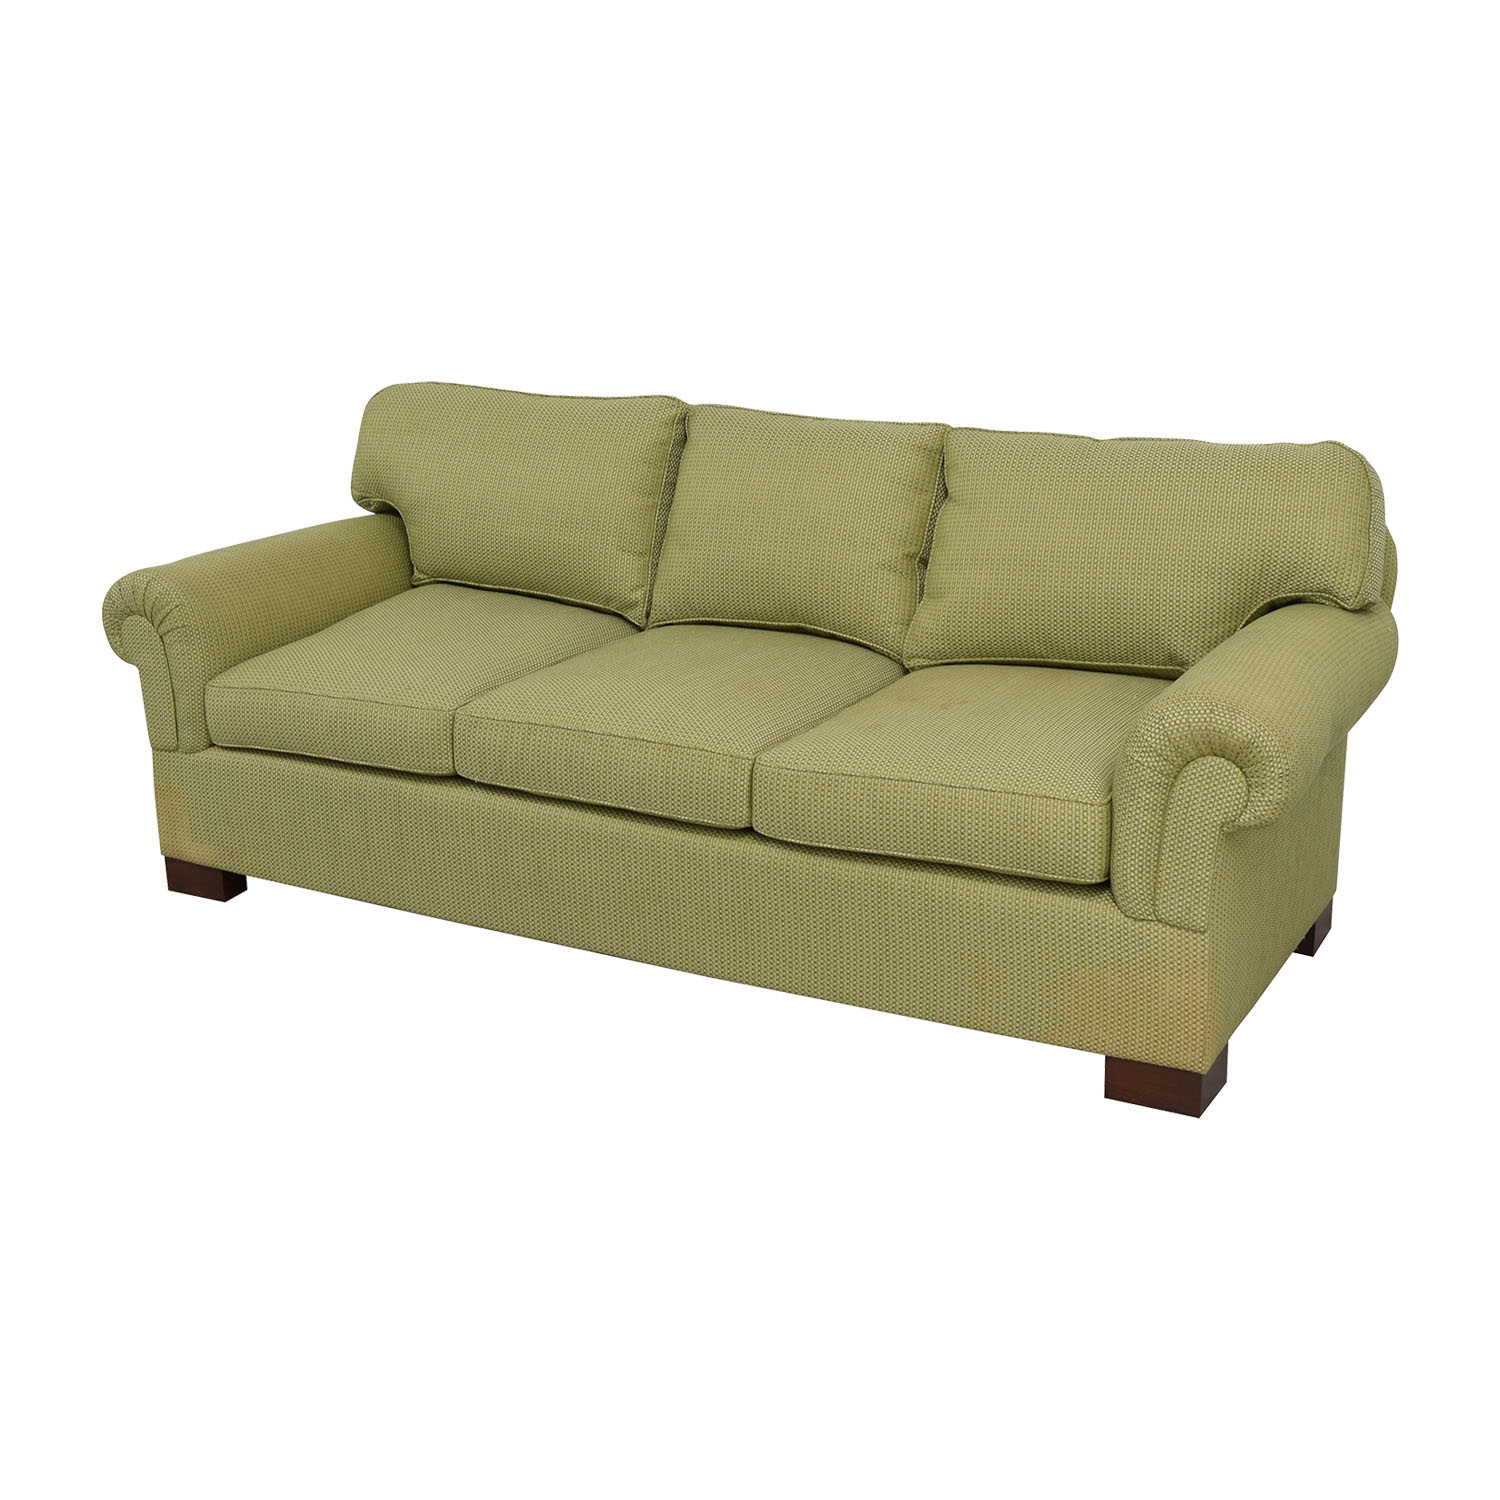 Furniture Masters Furniture Masters Green Three Seater Sofa second hand